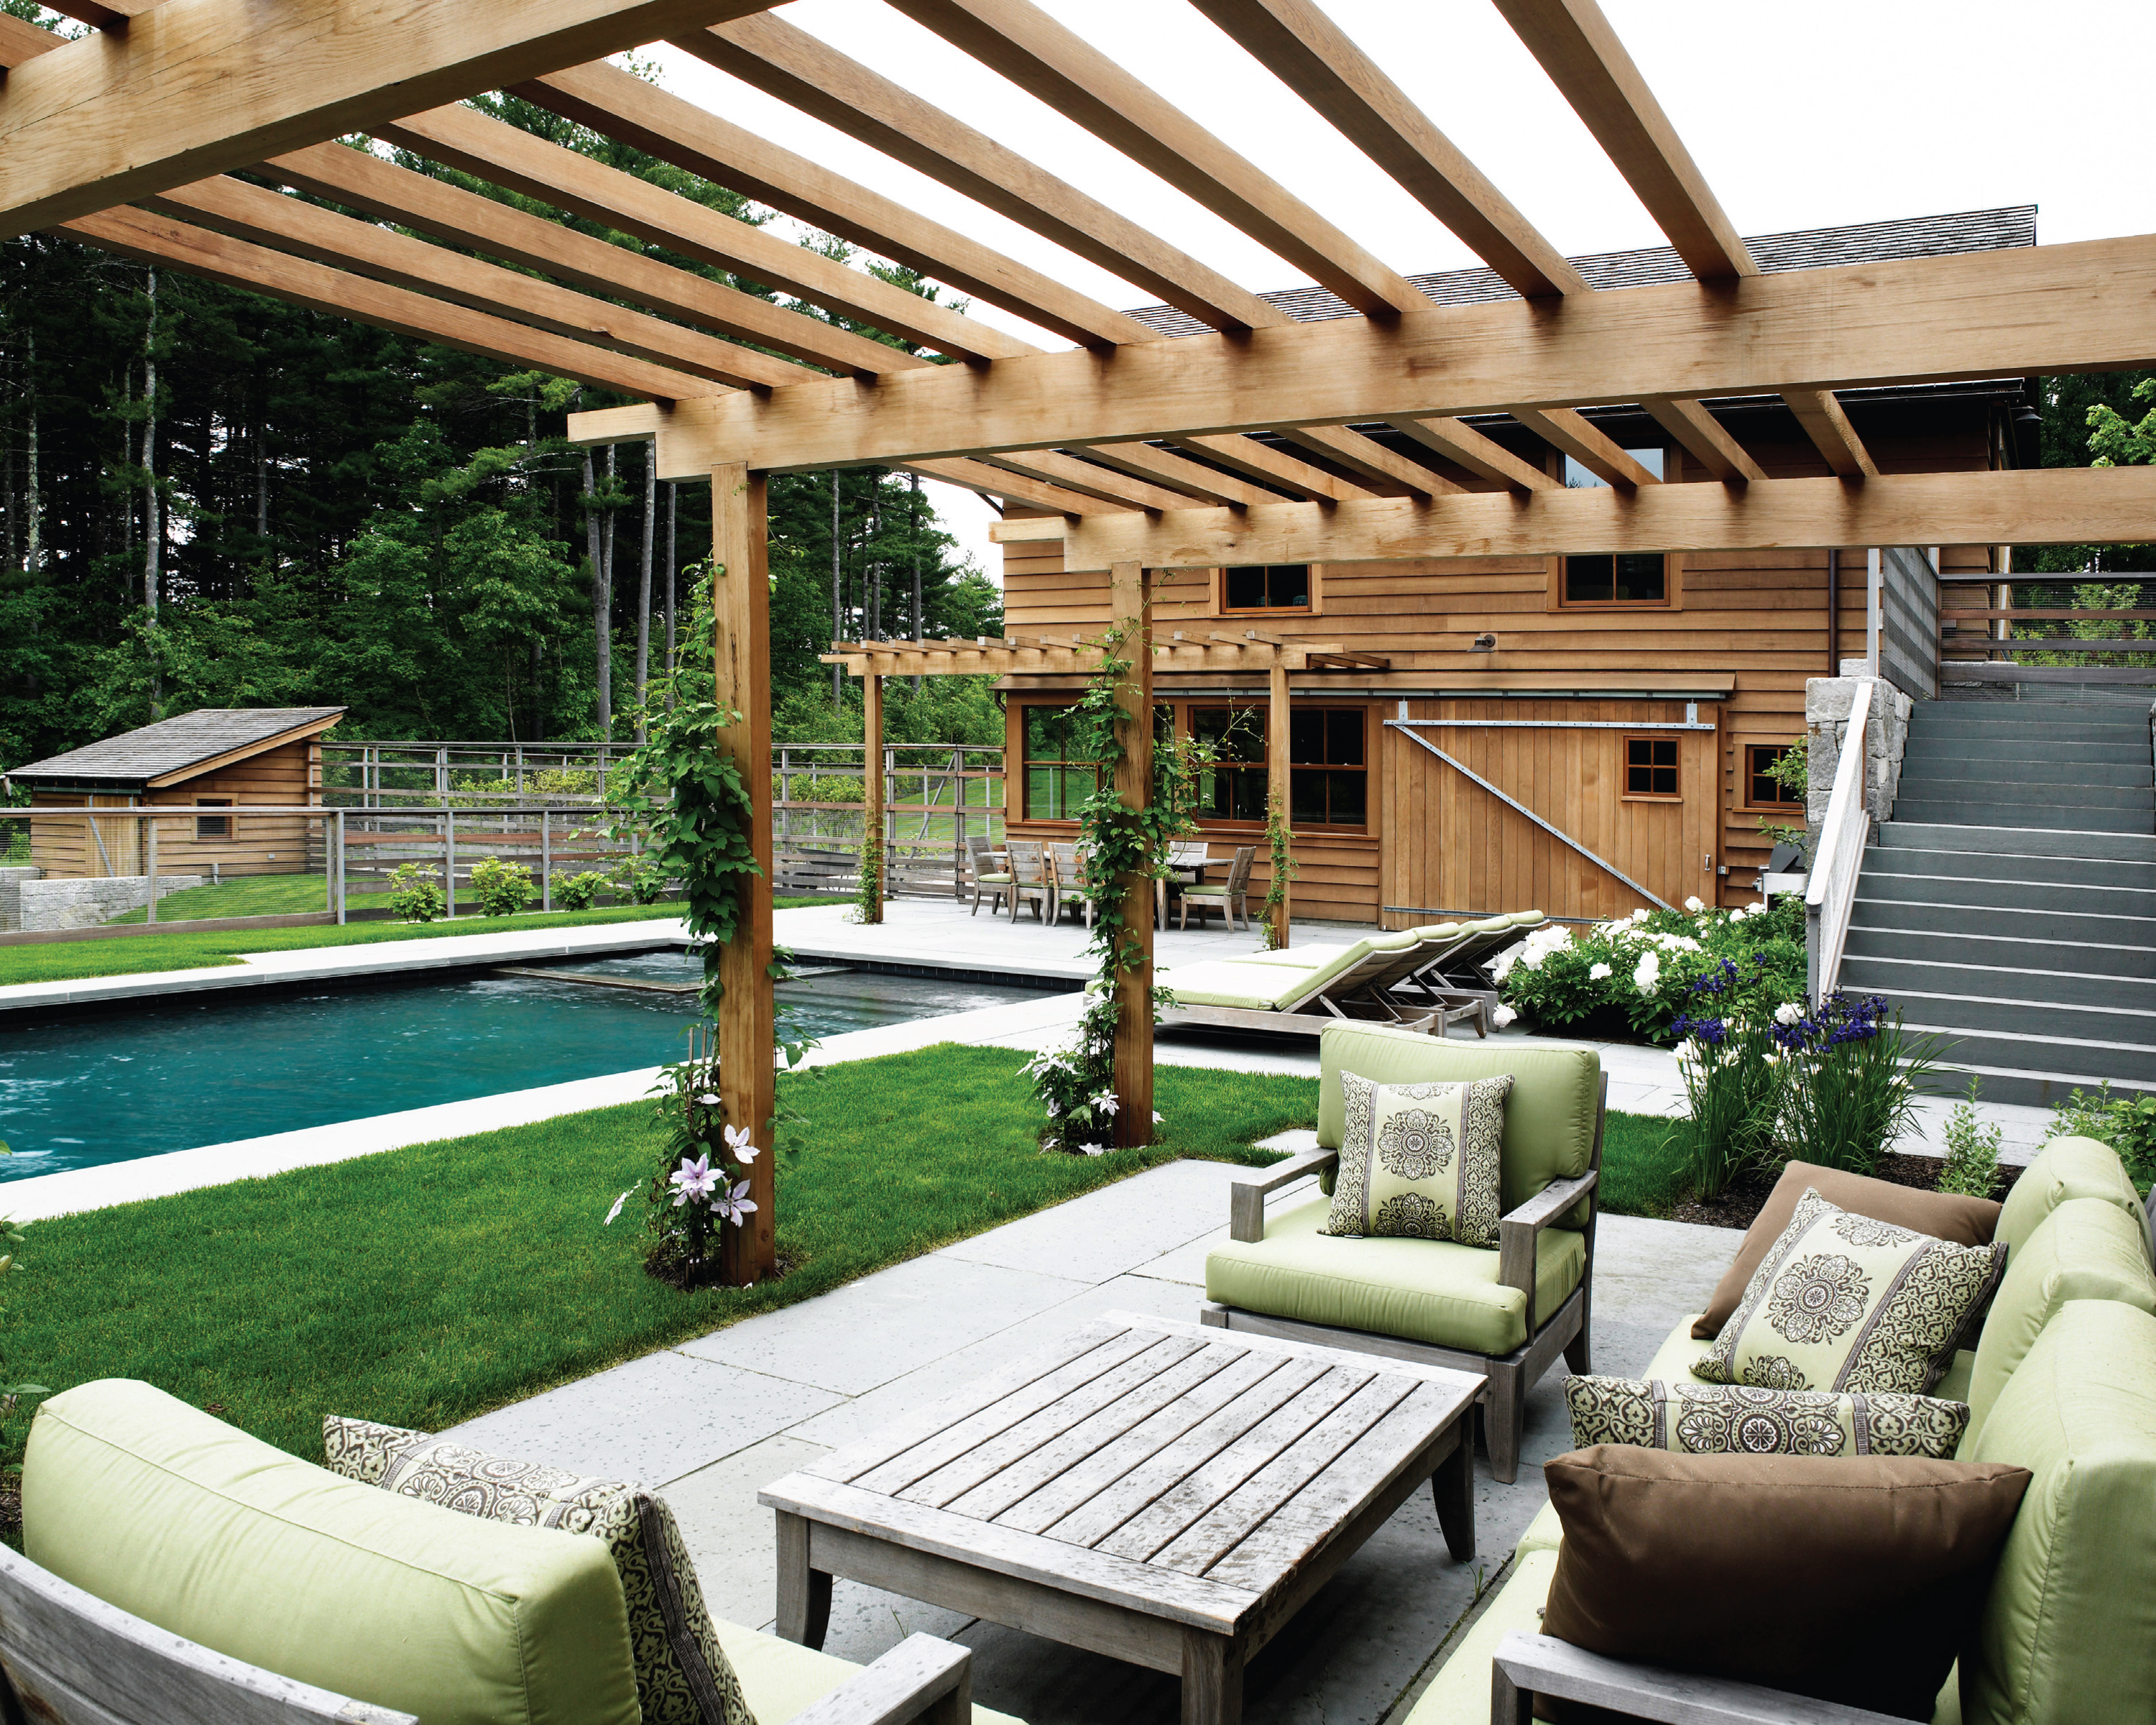 Asla 2012 professional awards maple hill residence for Award winning patio designs